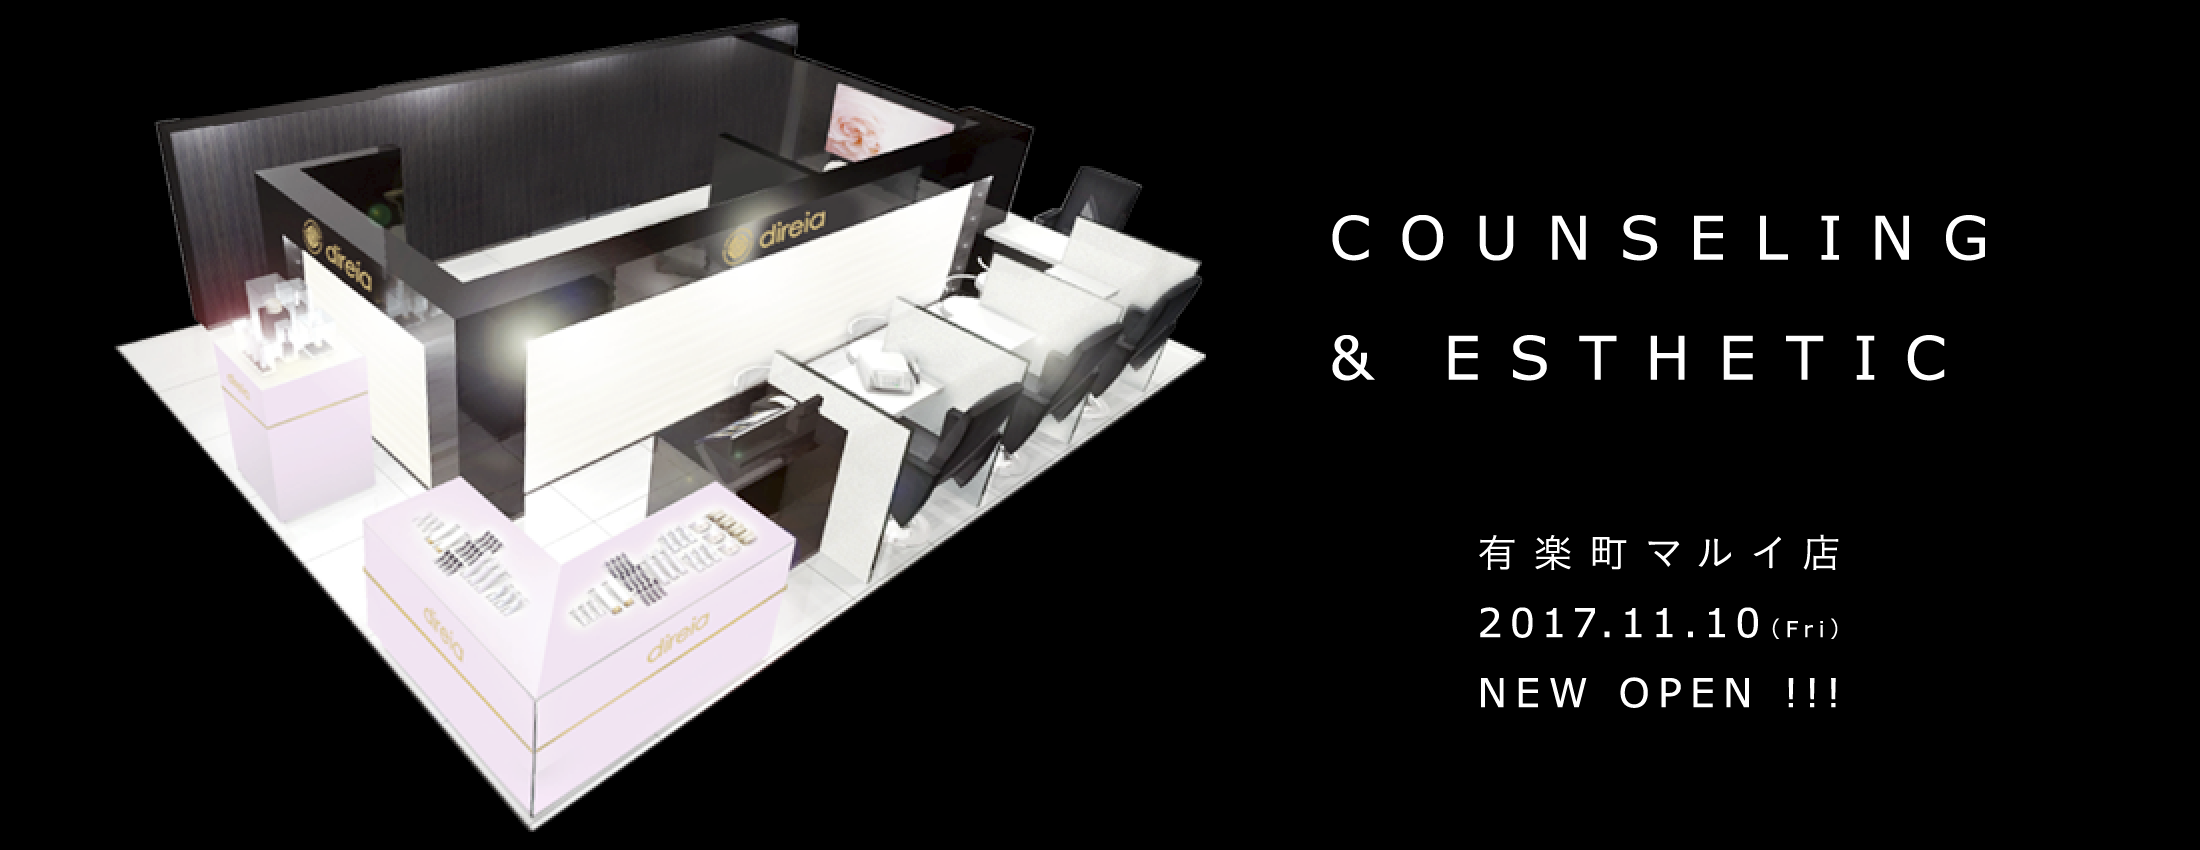 COUNSELING & ESTETIC 有楽町マルイ店 2017.11.10(Fri) NEW OPEN!!